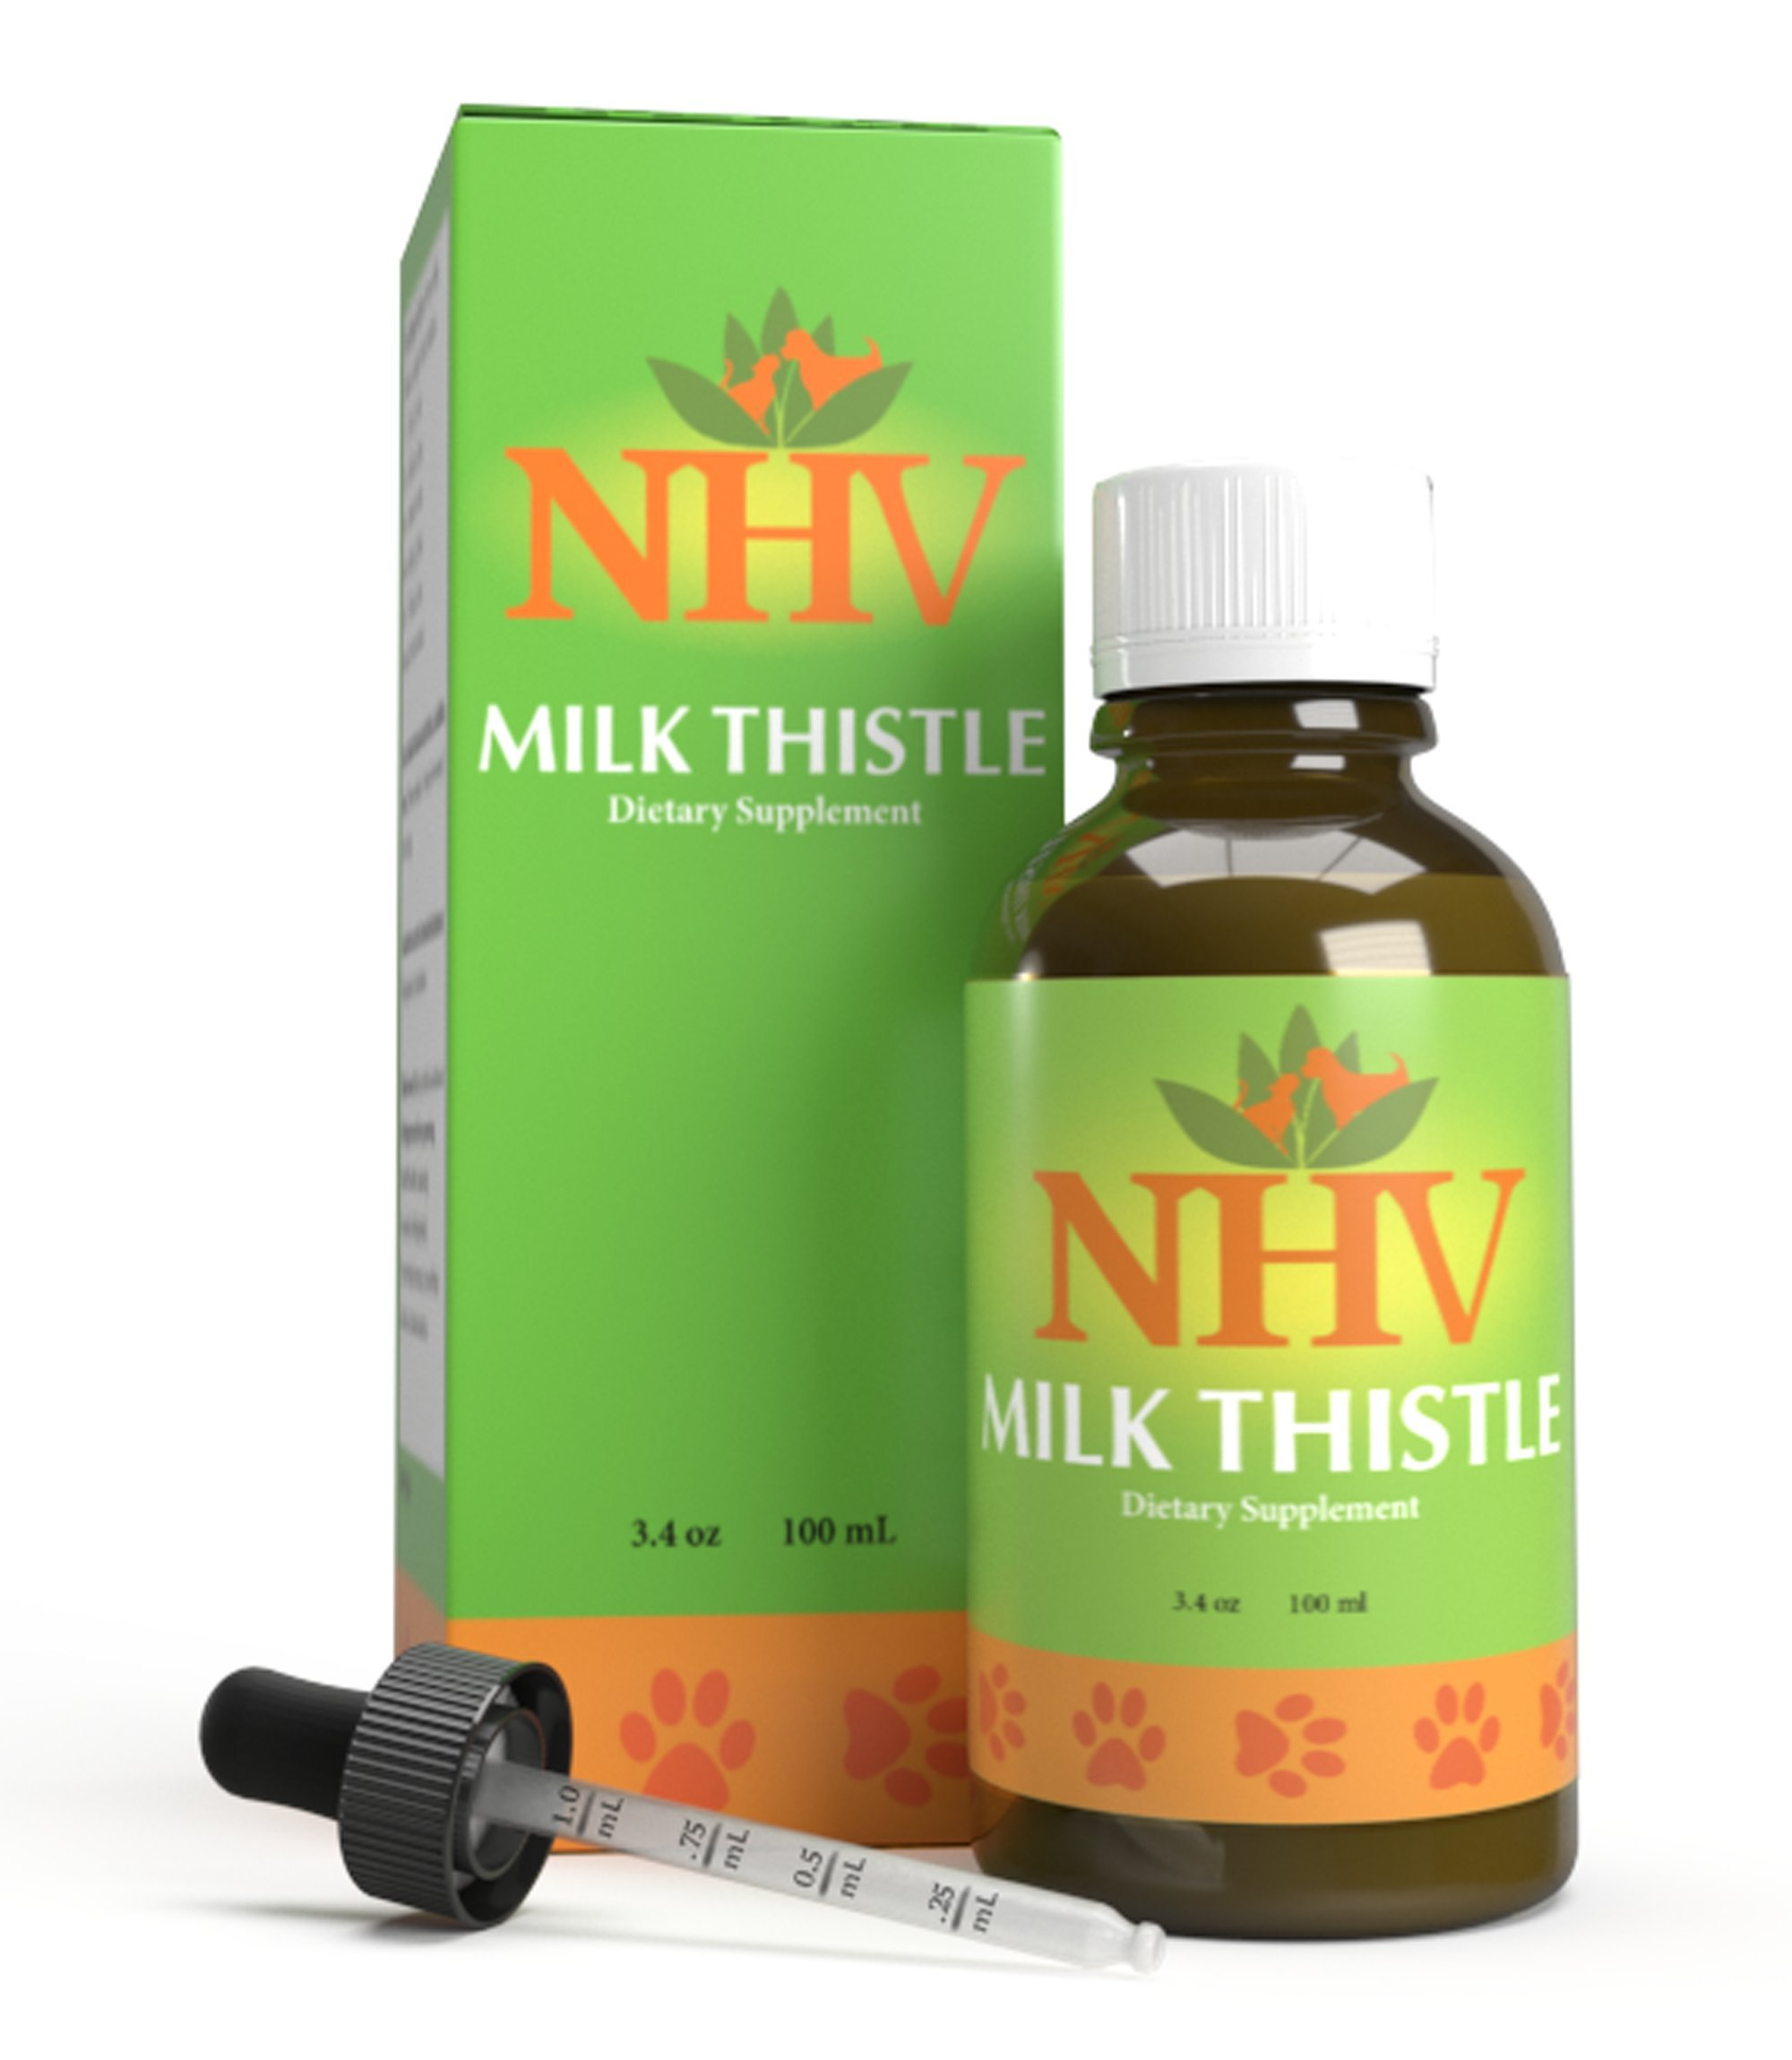 NHV Milk Thistle - Support for Liver Disease, Liver and Kidney Detox, Kidney Support in Cats, Dogs and Small Pets